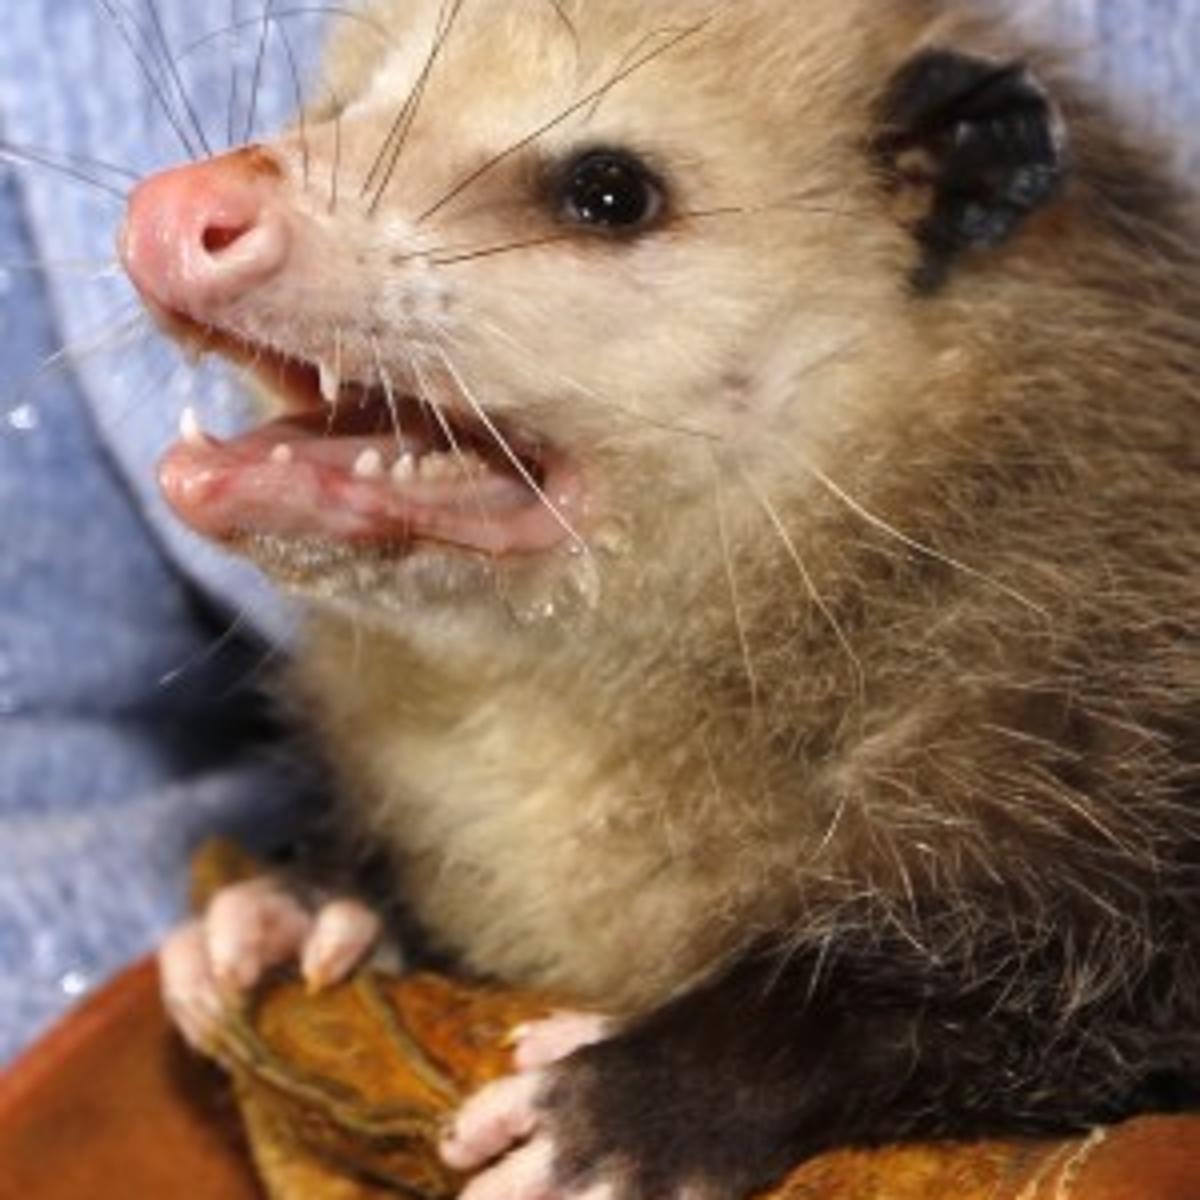 Opossum recovering after being shot multiple times in